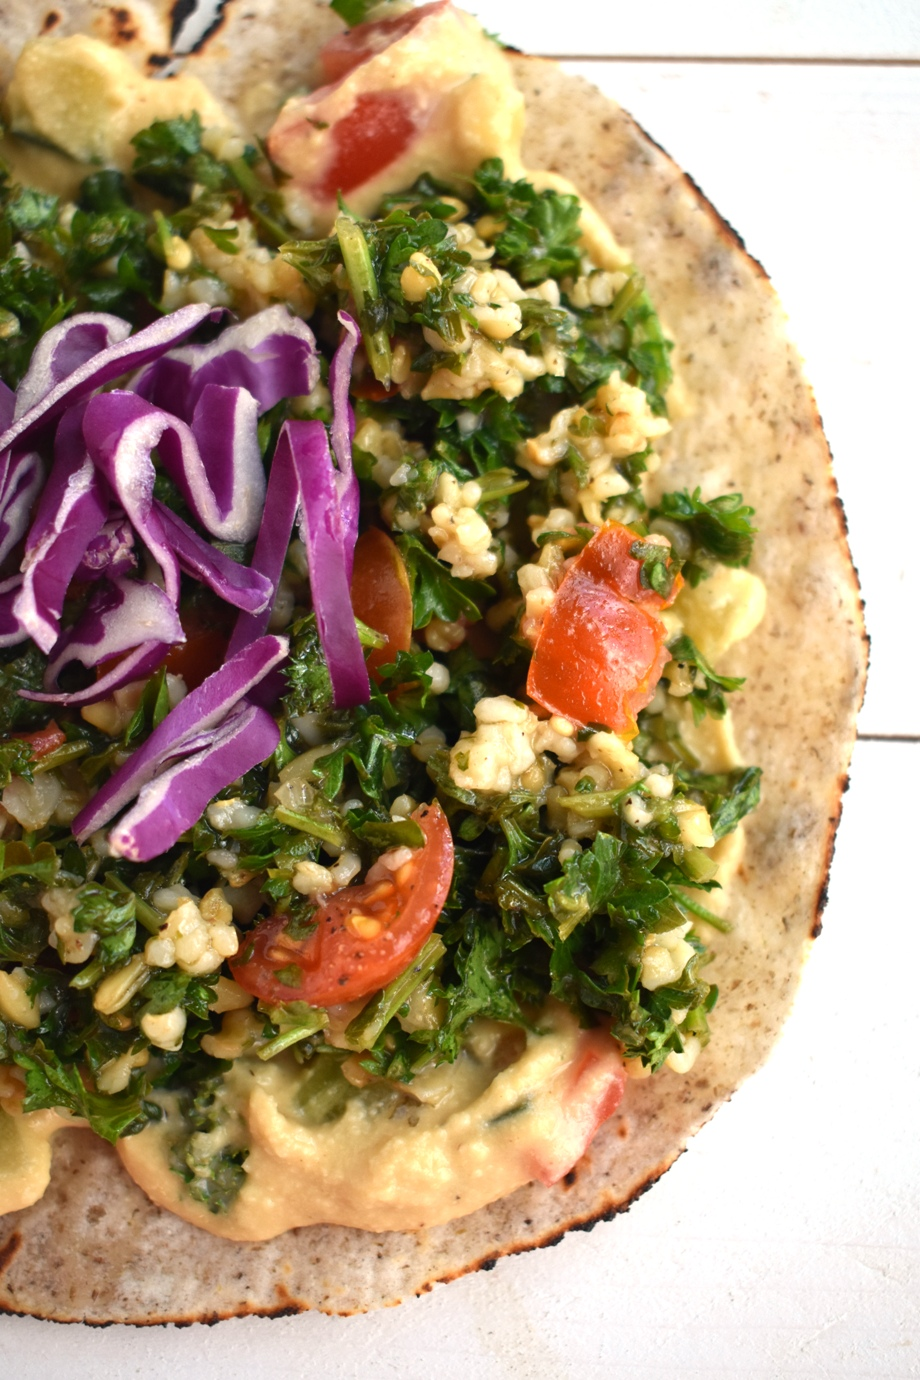 Hummus and tabbouleh wrap